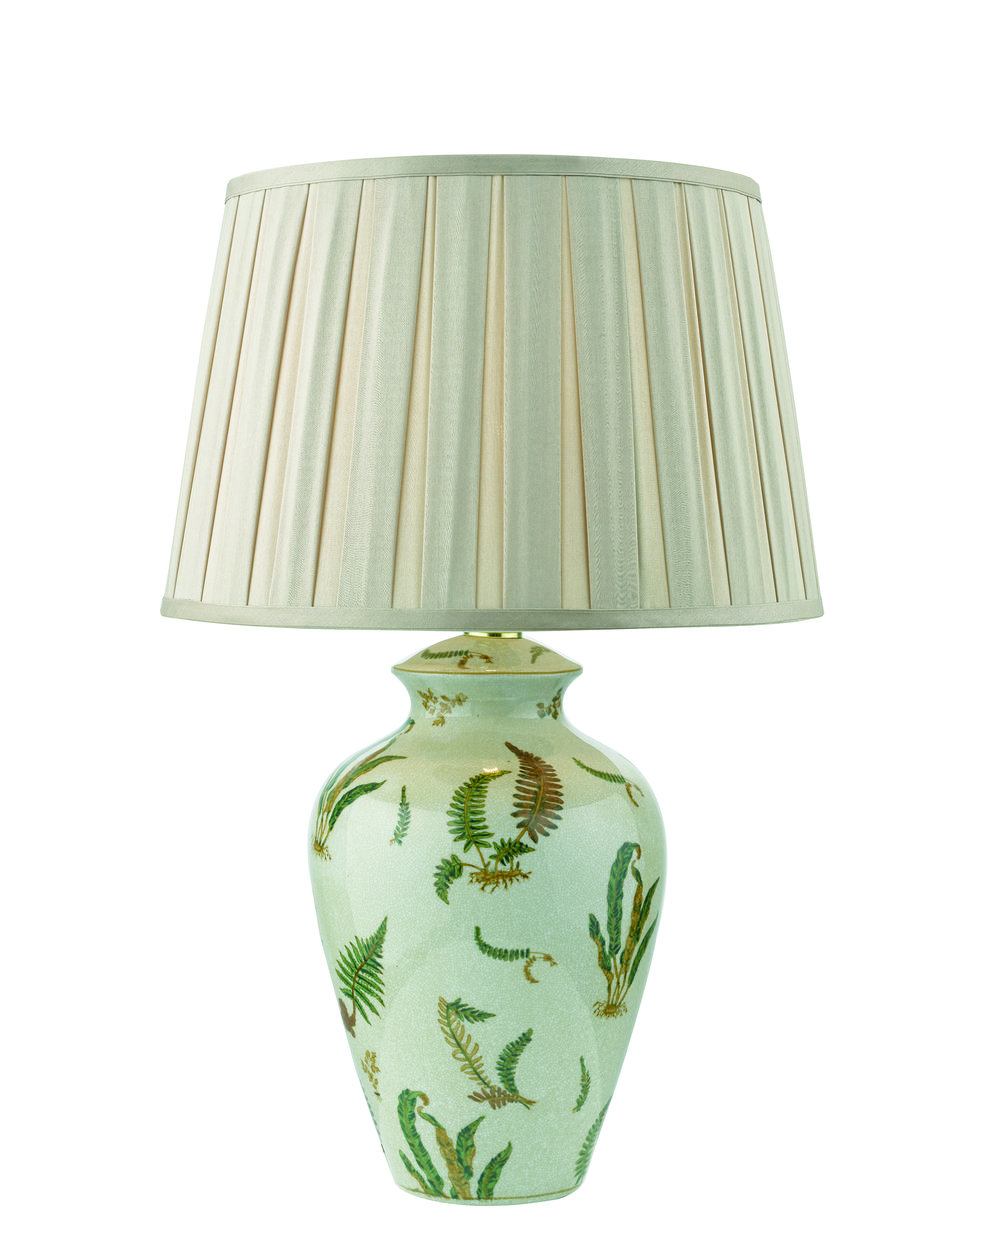 Credit: Dar Lighting Group. Eglantine Porcelain Table Lamp Base. £81.60.  www.darlighting.co.uk